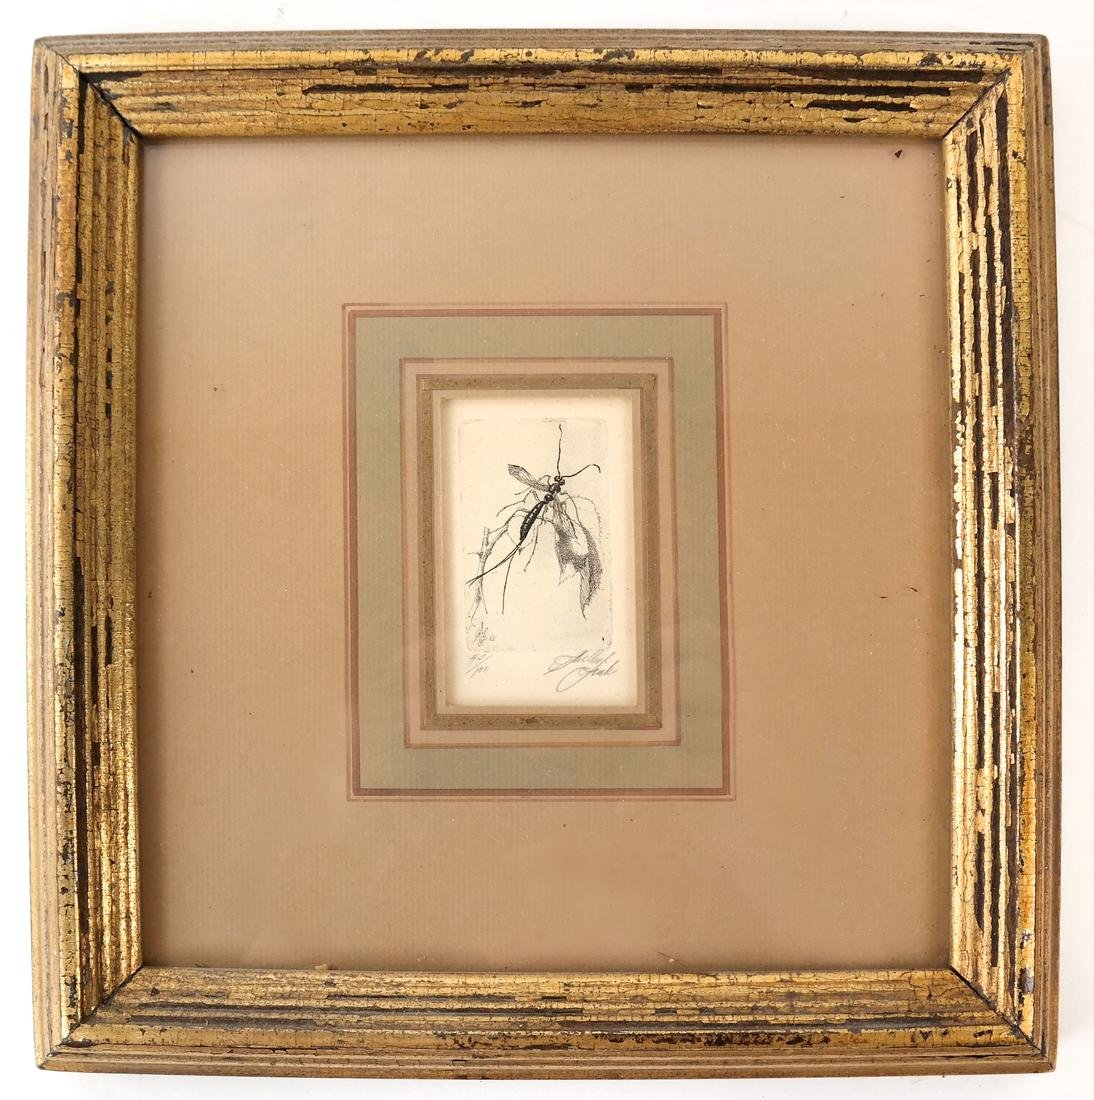 Sheldon Fink - Three Etchings of Insects - 3